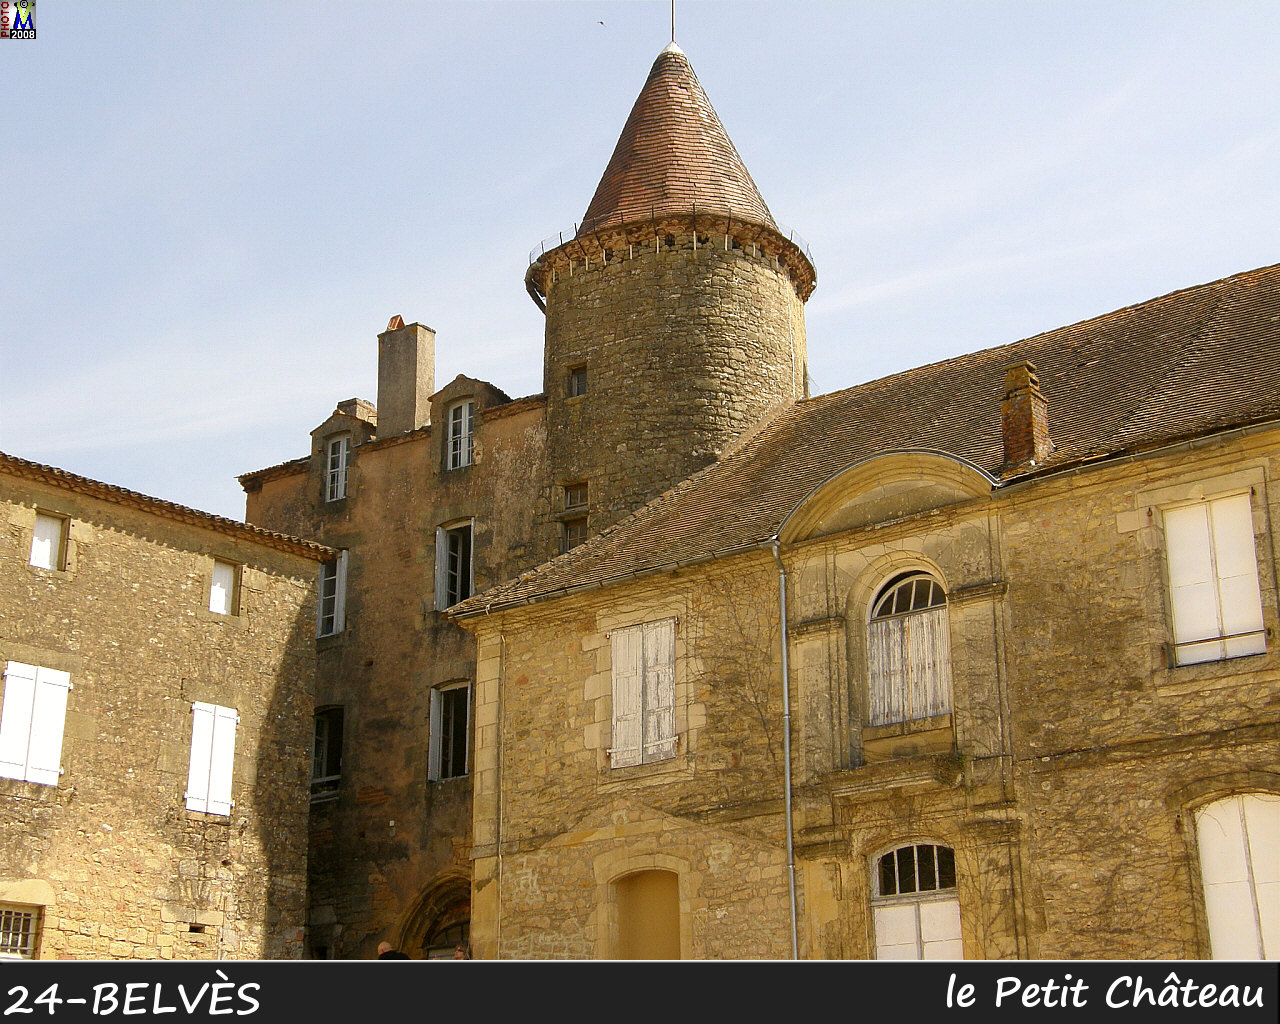 24BELVES_chateau_402.jpg